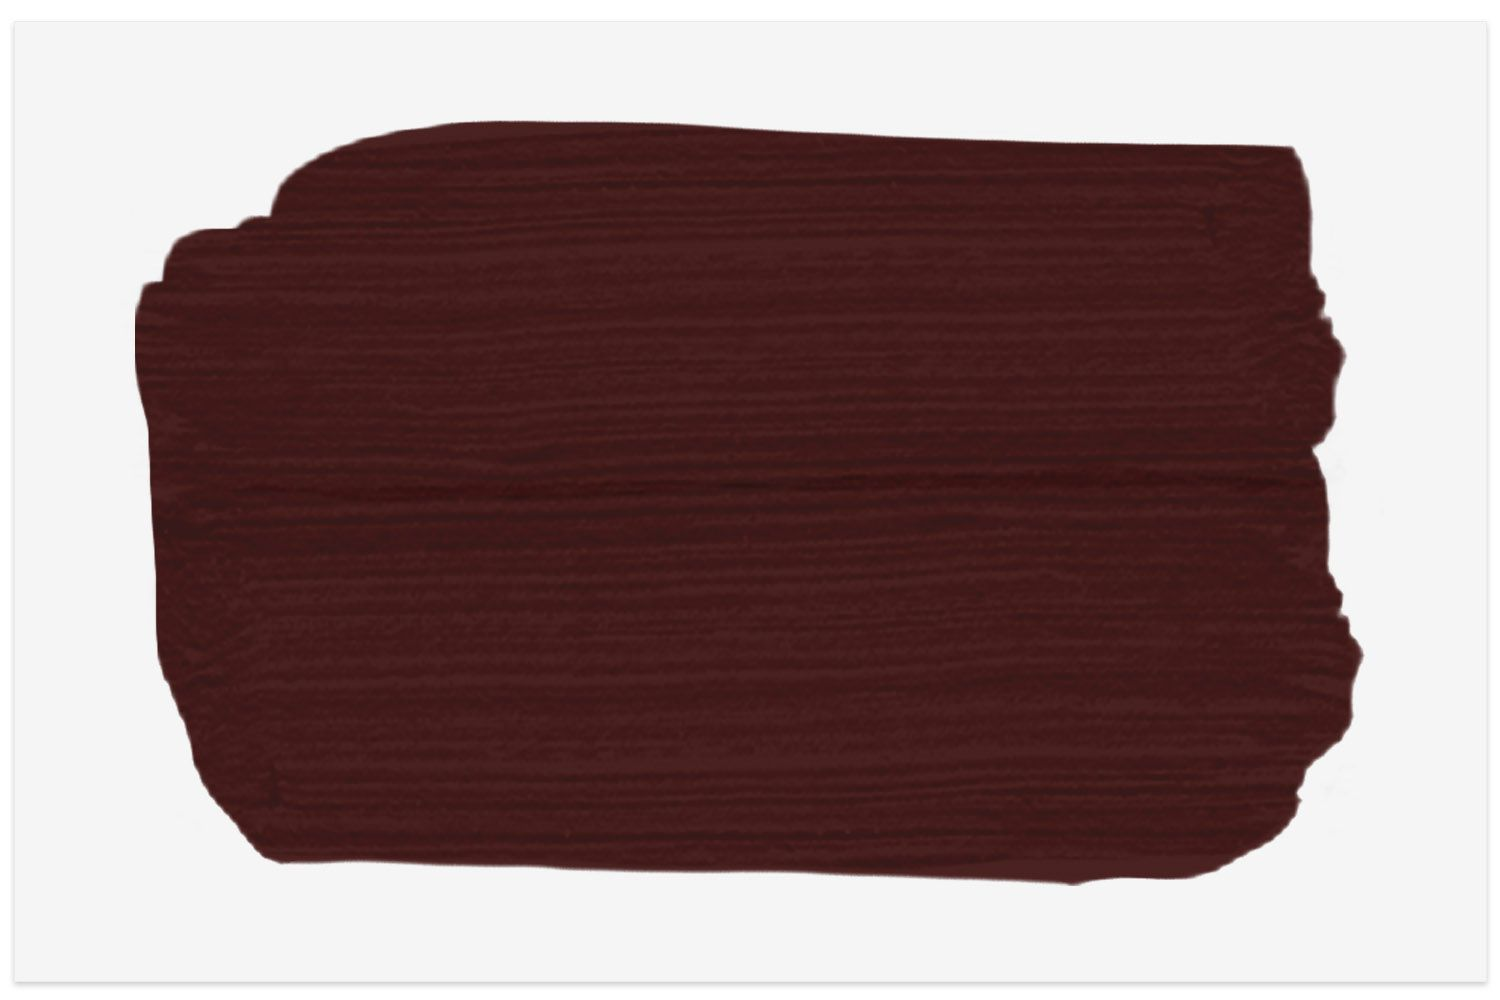 Rockwood Red paint swatch from Sherwin-Williams